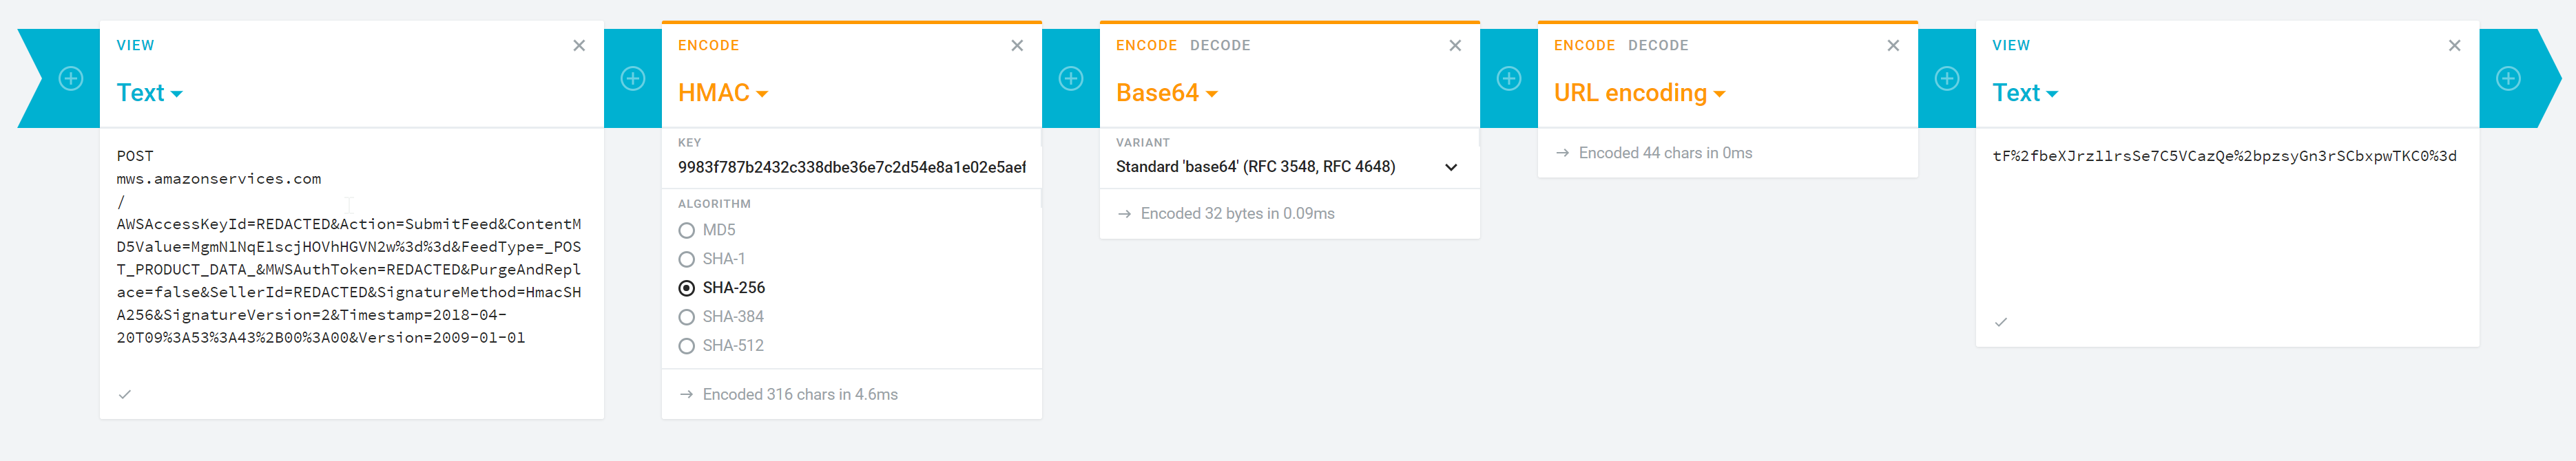 Feature Request] Please provide a way to use HMAC in the